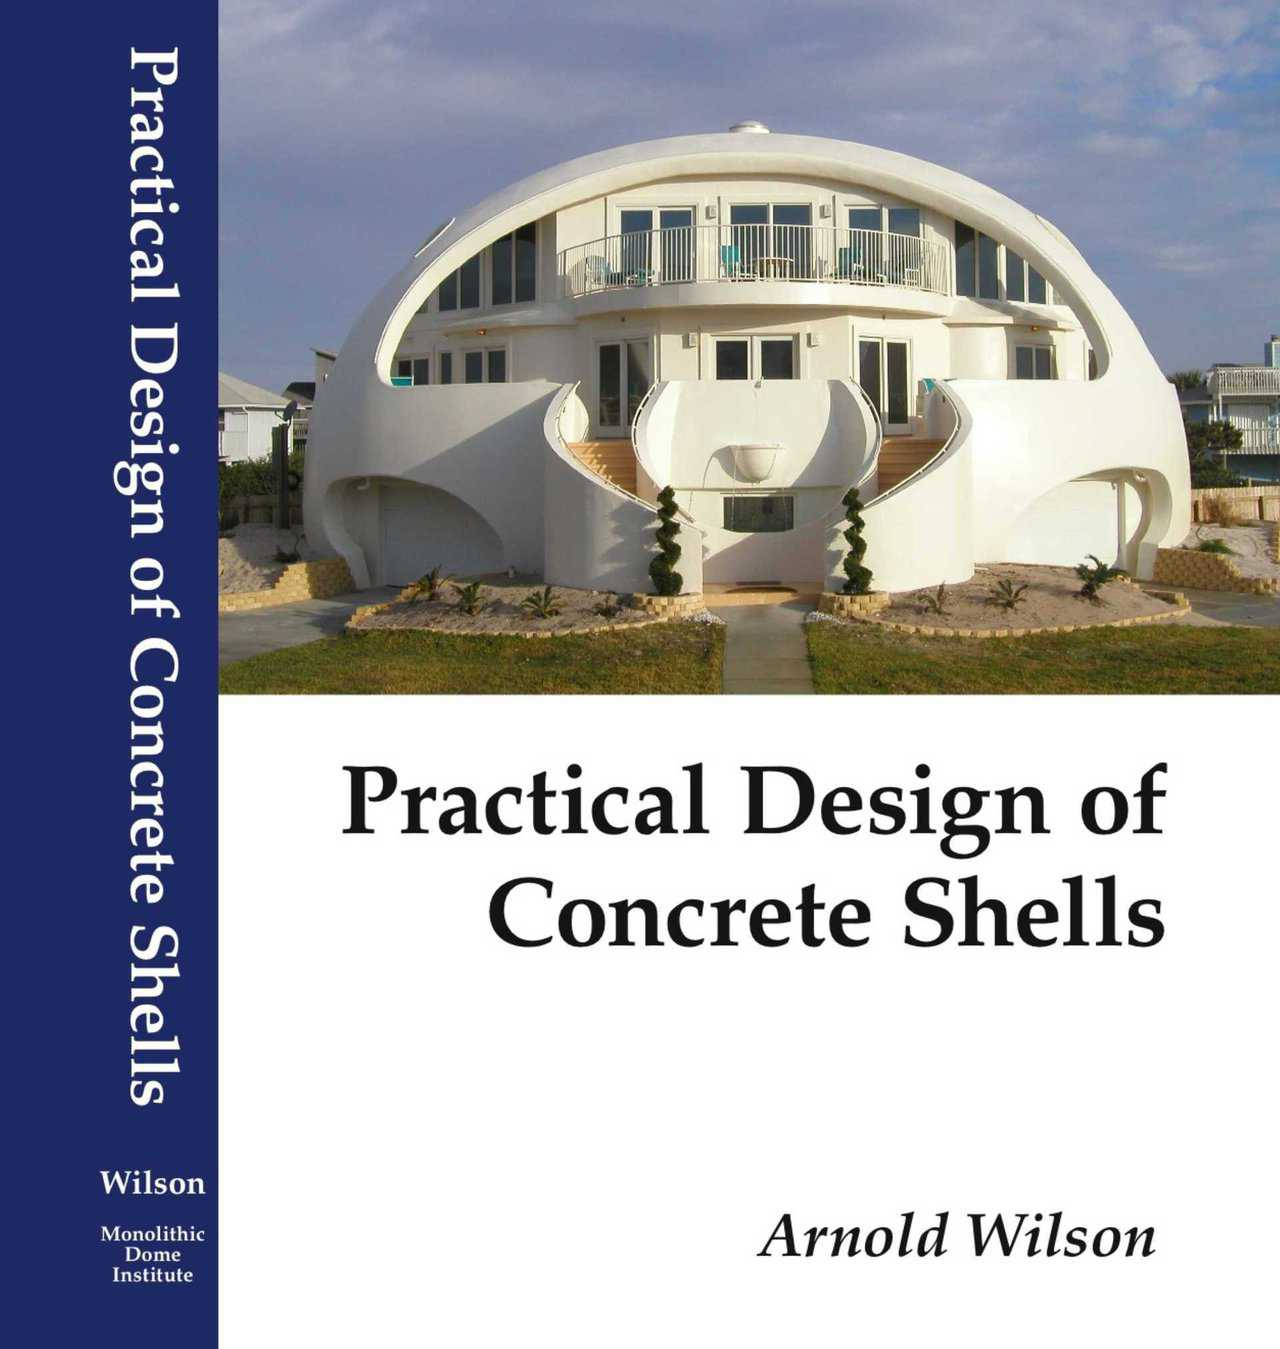 Dr. Wilson's book is a reference text on the construction of concrete thin shell structures, specifically written for engineers, architects, builders and students of those disciplines. On the cover is the fabulous Dome of a Home located in Pensacola, Florida and operated as a luxurious vacation resort.  This dome is a prime example of a thin shell concrete dome that is not only beautiful but has the proven ability to withstand hurricanes.